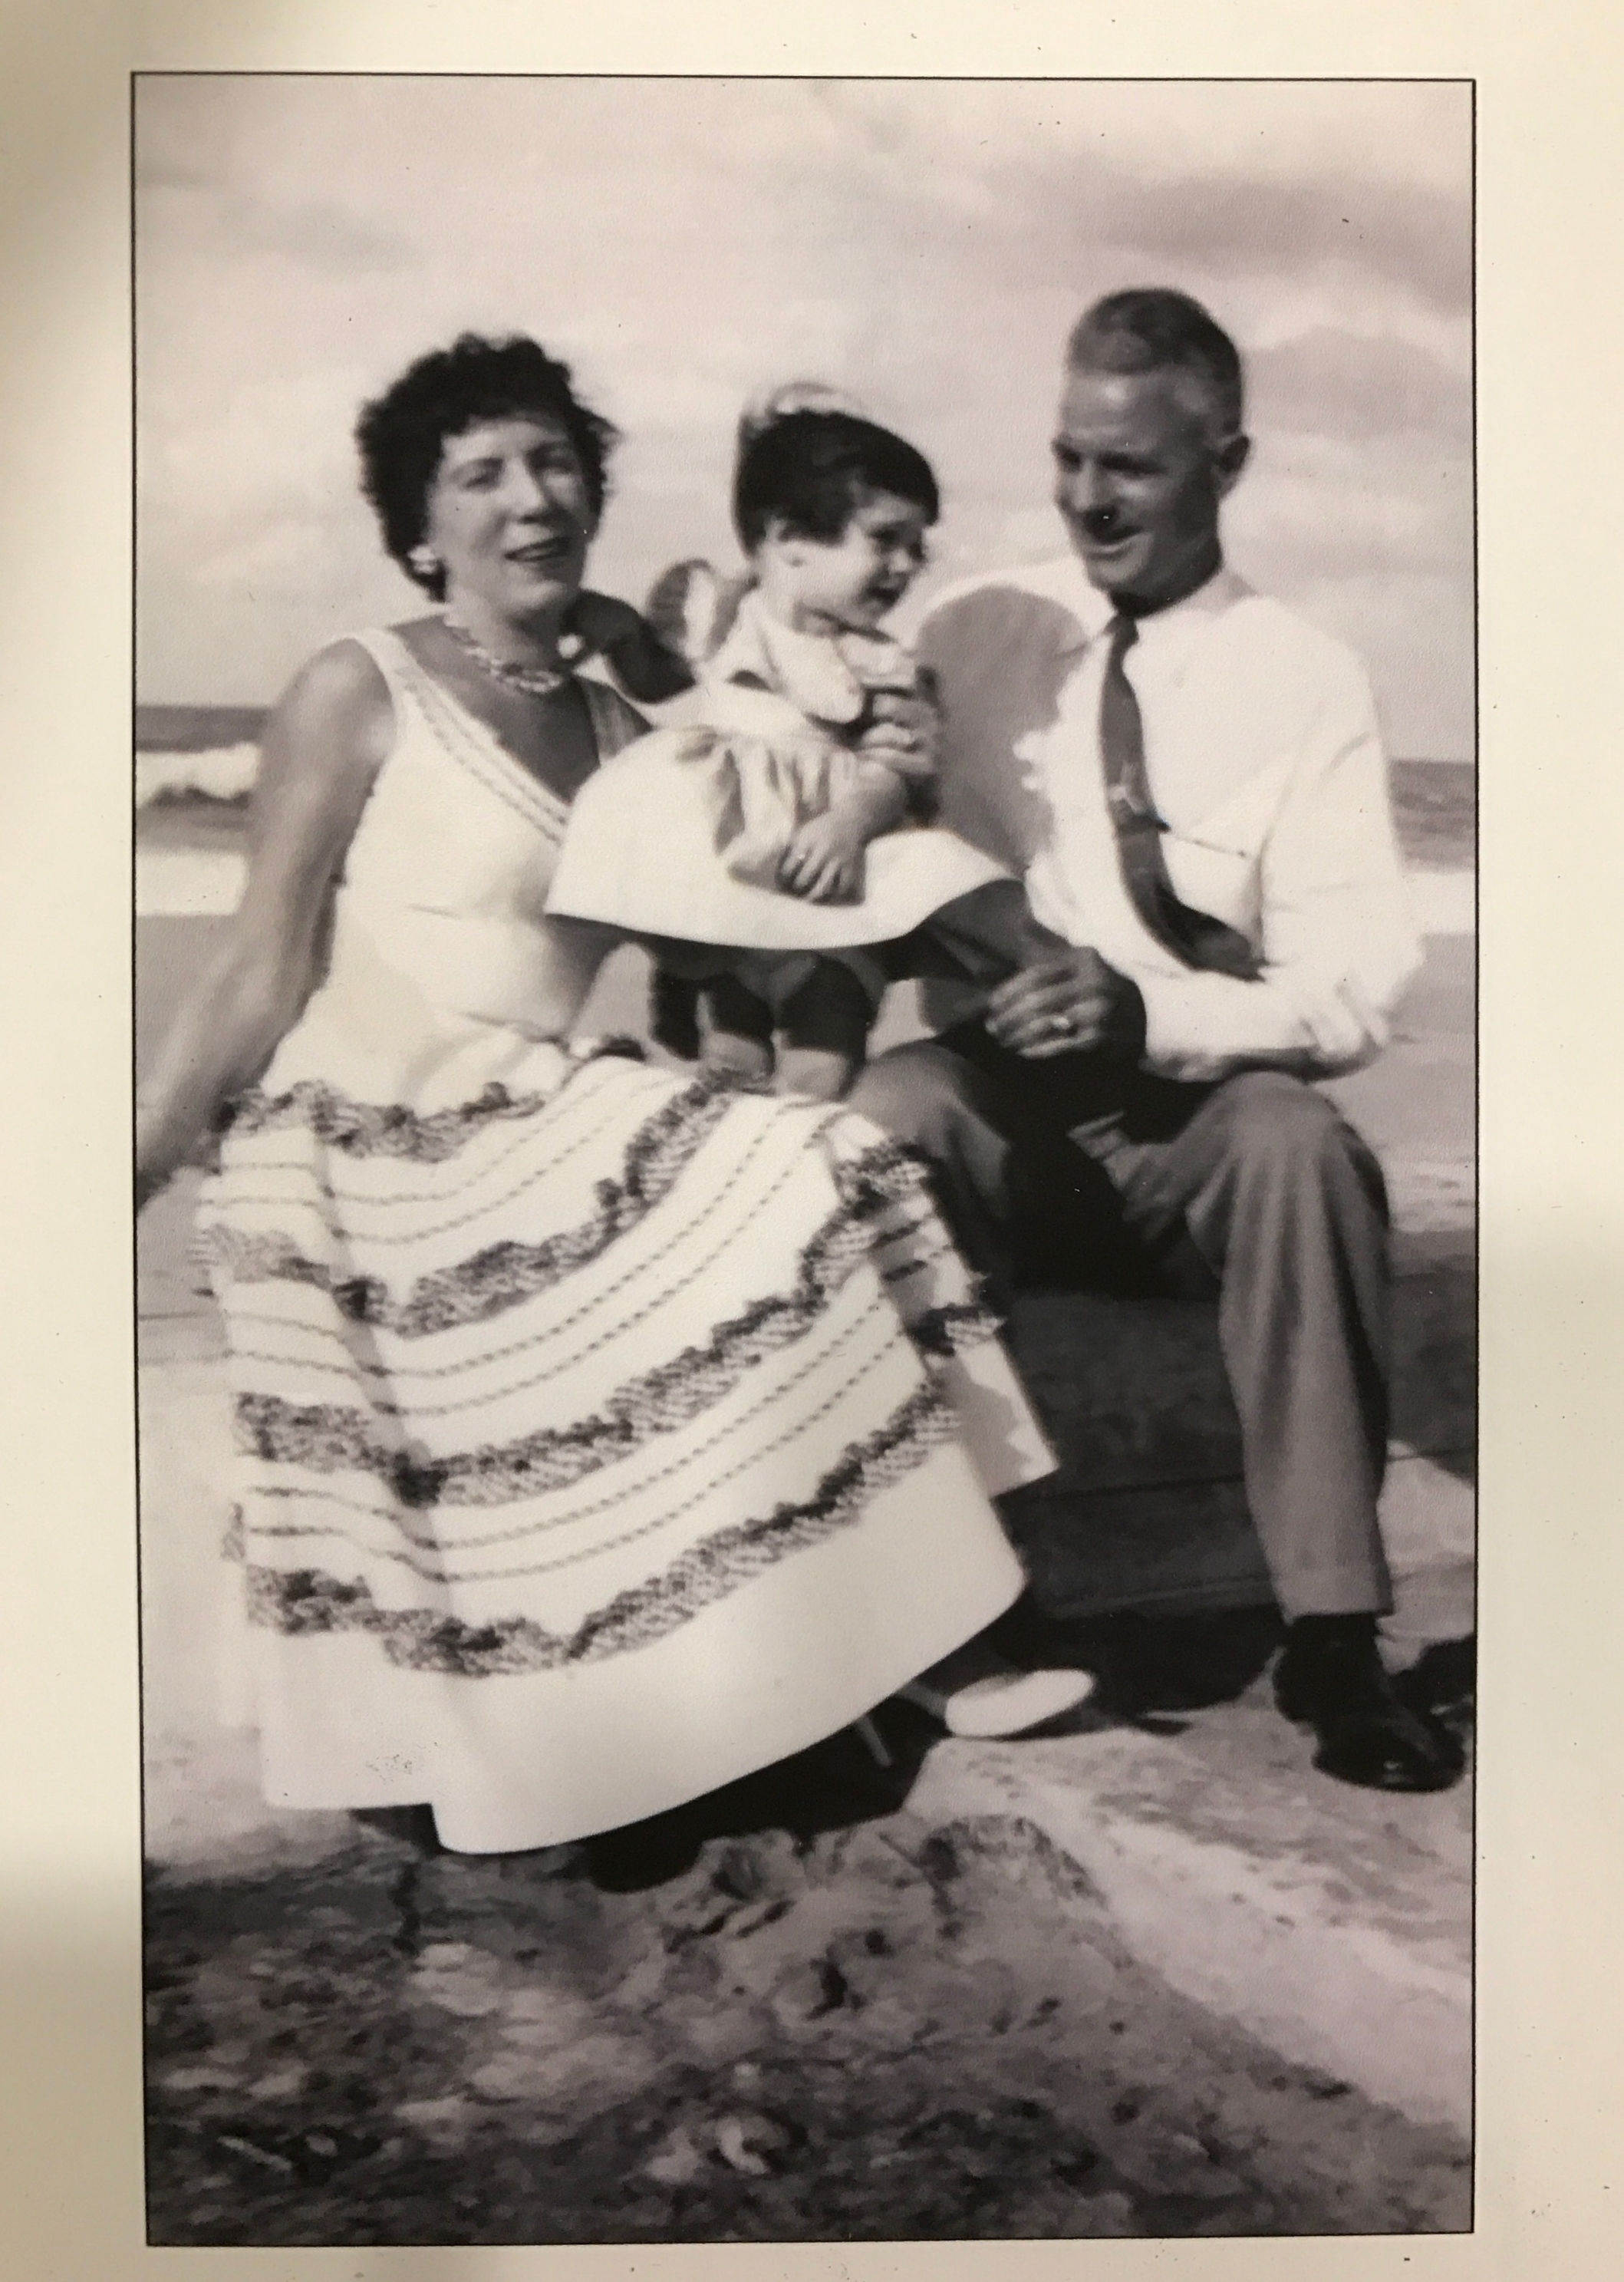 My mom and grandparents on the Malecon - the famous oceanfront boardwalk and boulevard in Havana.